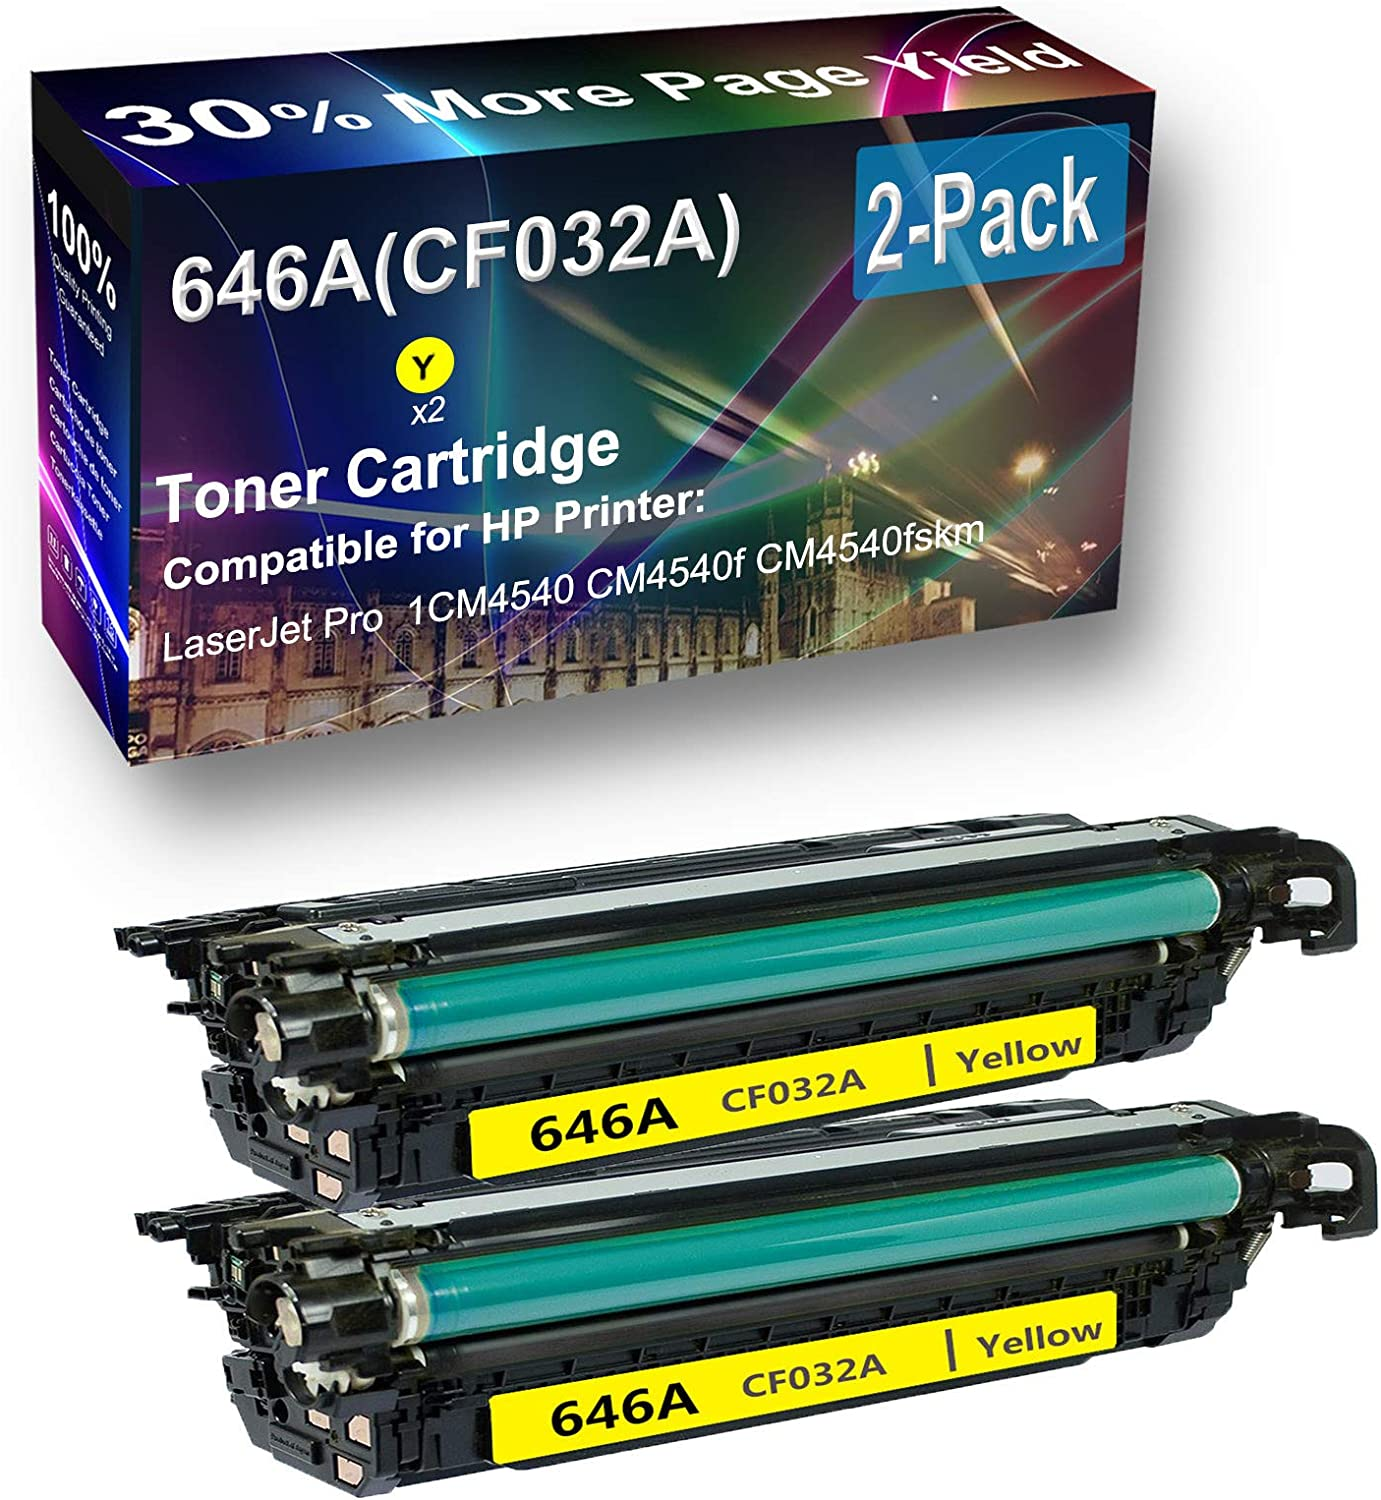 2-Pack (Yellow) Compatible High Capacity 646A (CF032A) Toner Cartridge use for HP CM4540 Printer